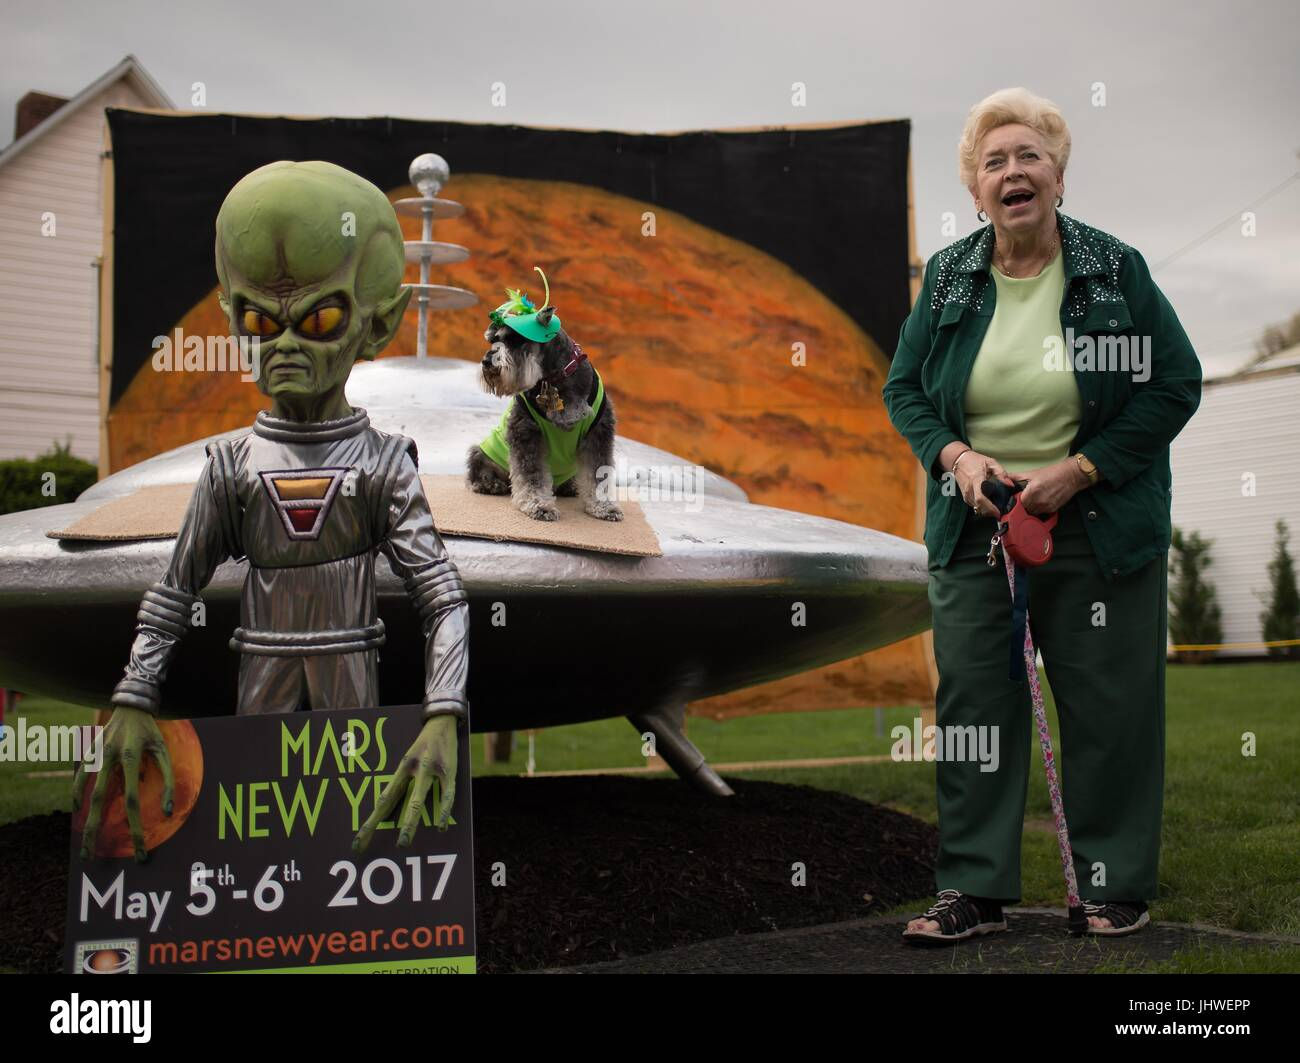 Resident Sue Morris and her dog Pepper pose with a model spacecraft and alien during the NASA Mars New Year celebration - Stock Image